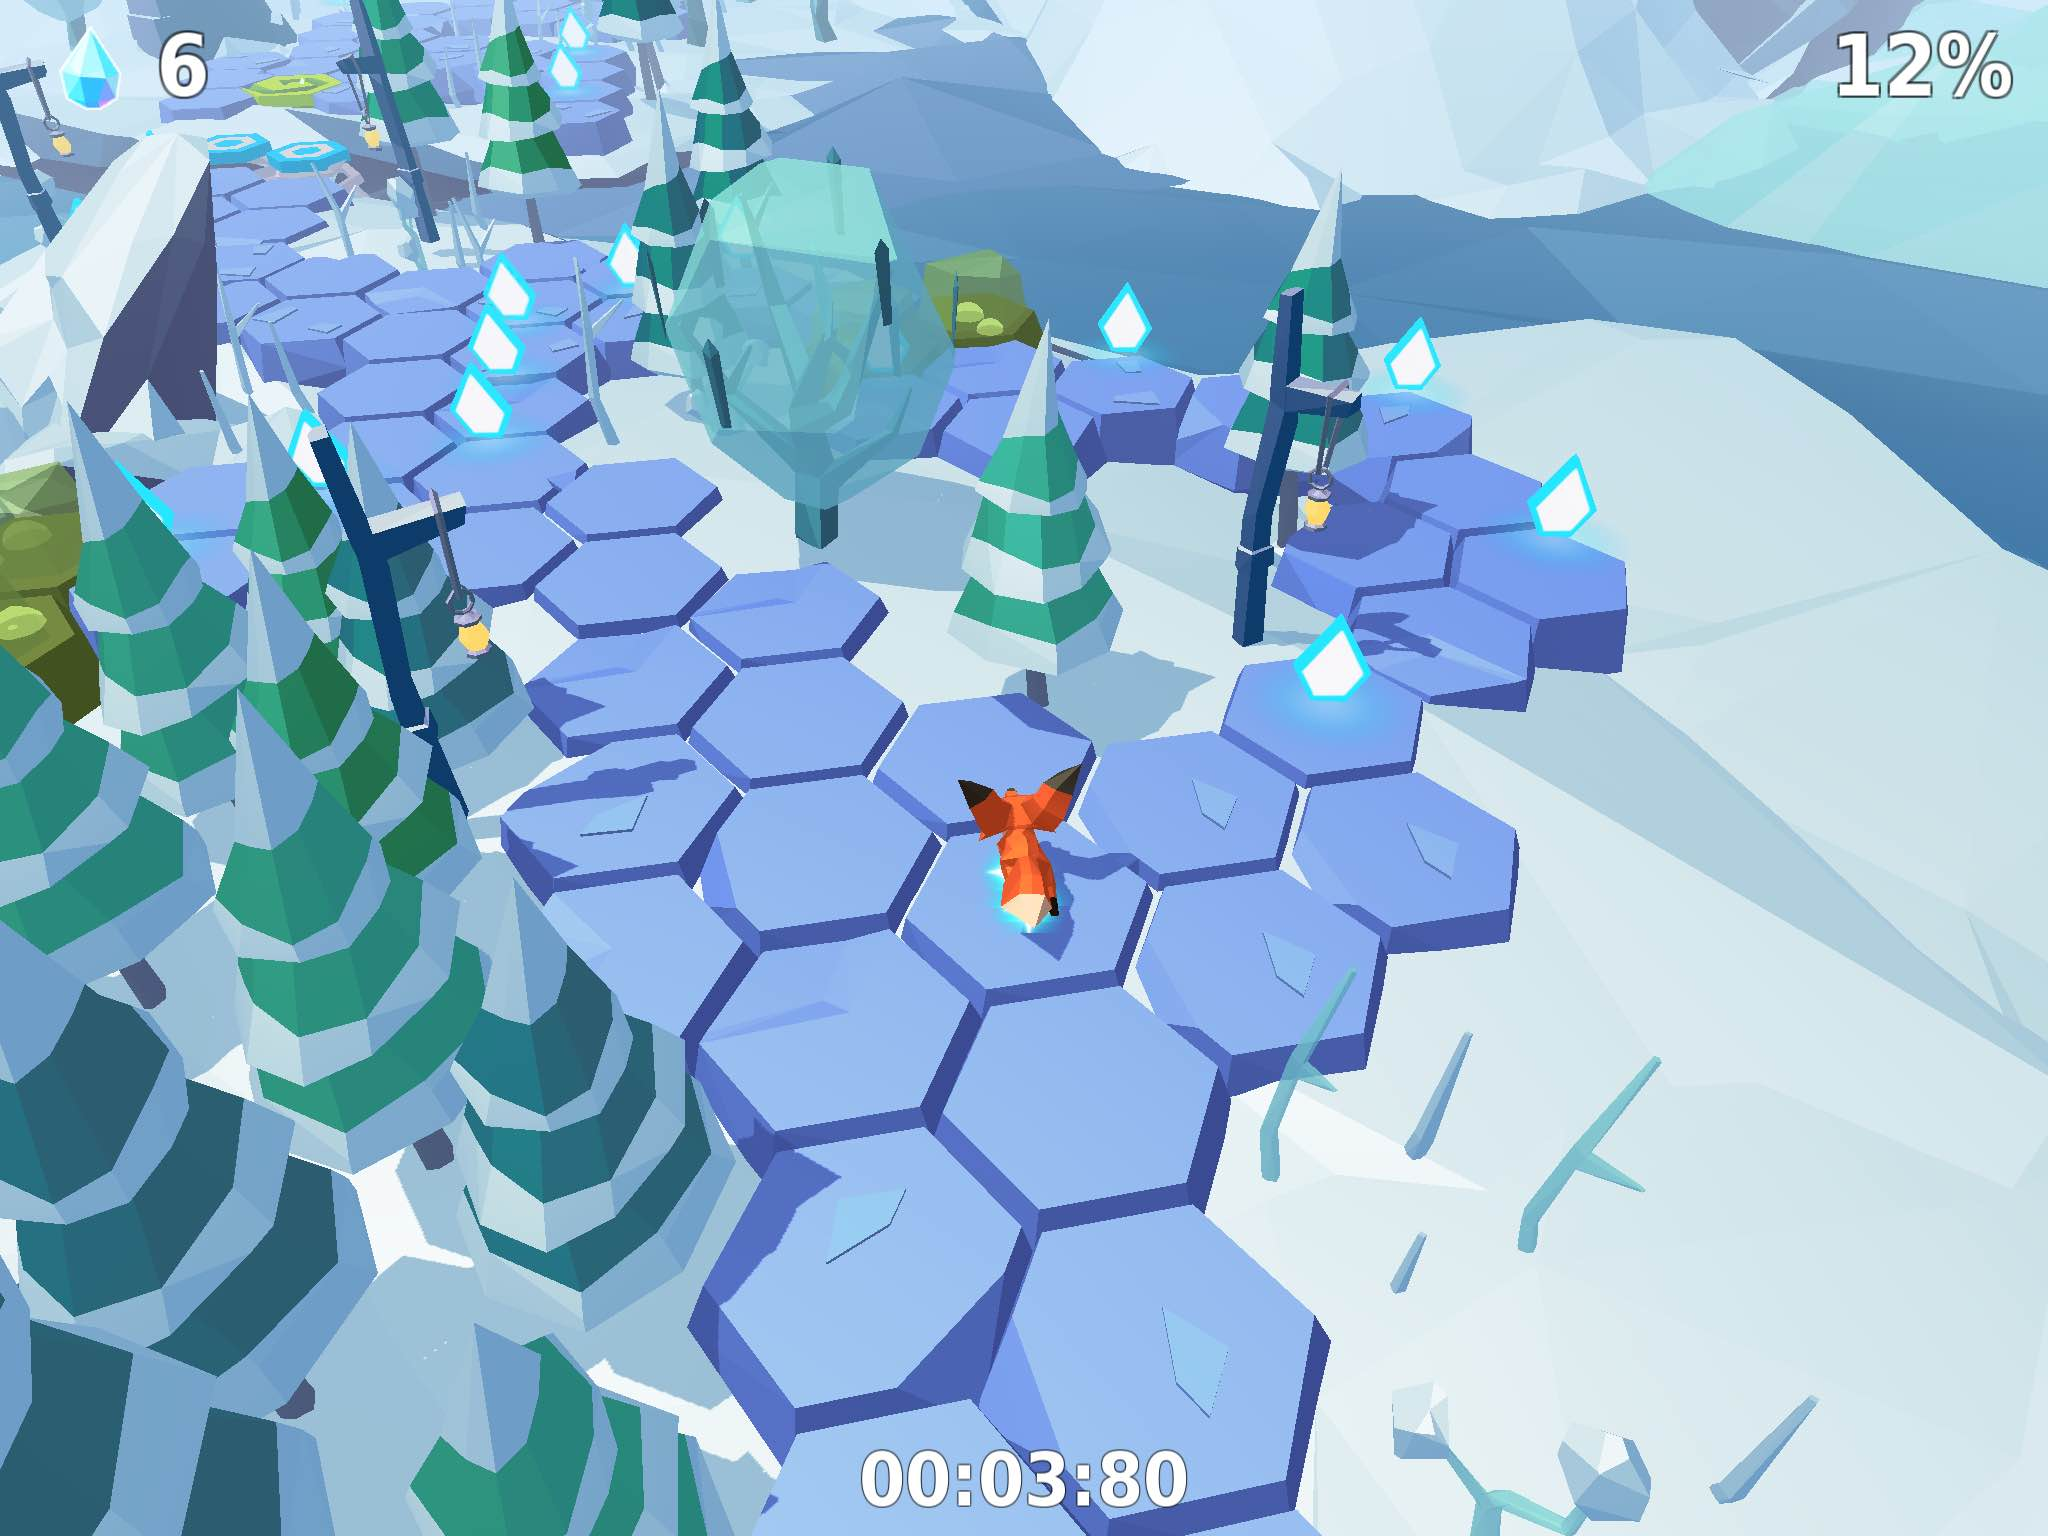 [Update] The Little Fox goes free on the App Store